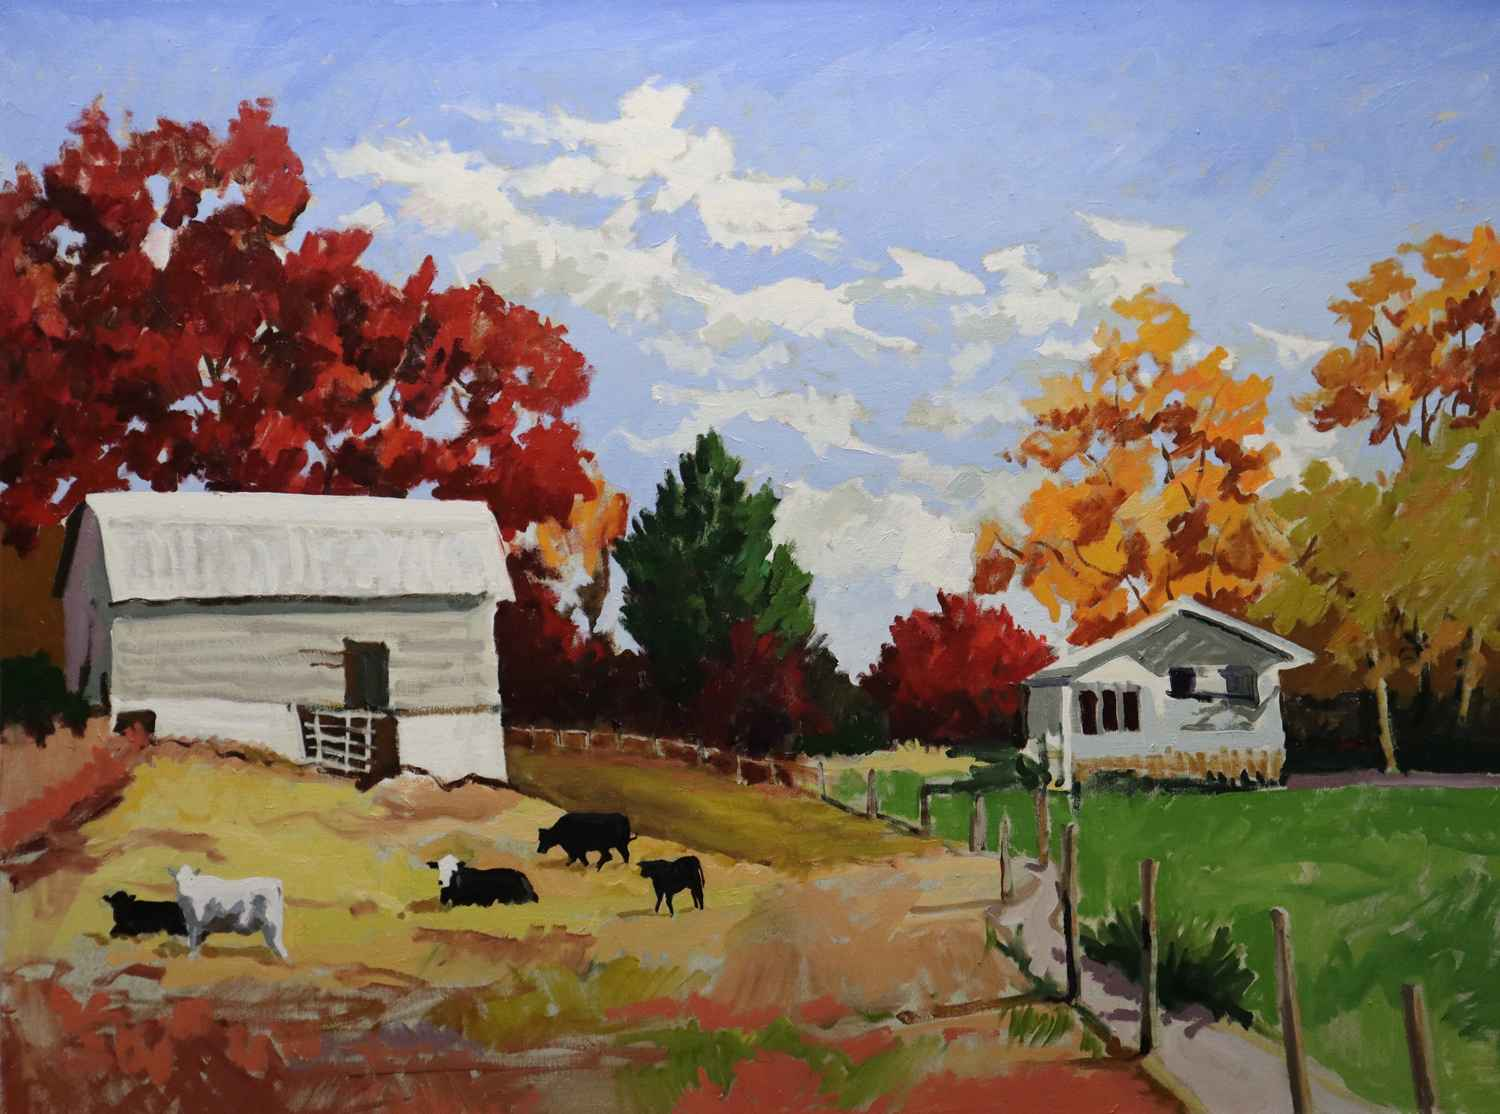 Farm in Autumn by  Joseph Cave - Masterpiece Online